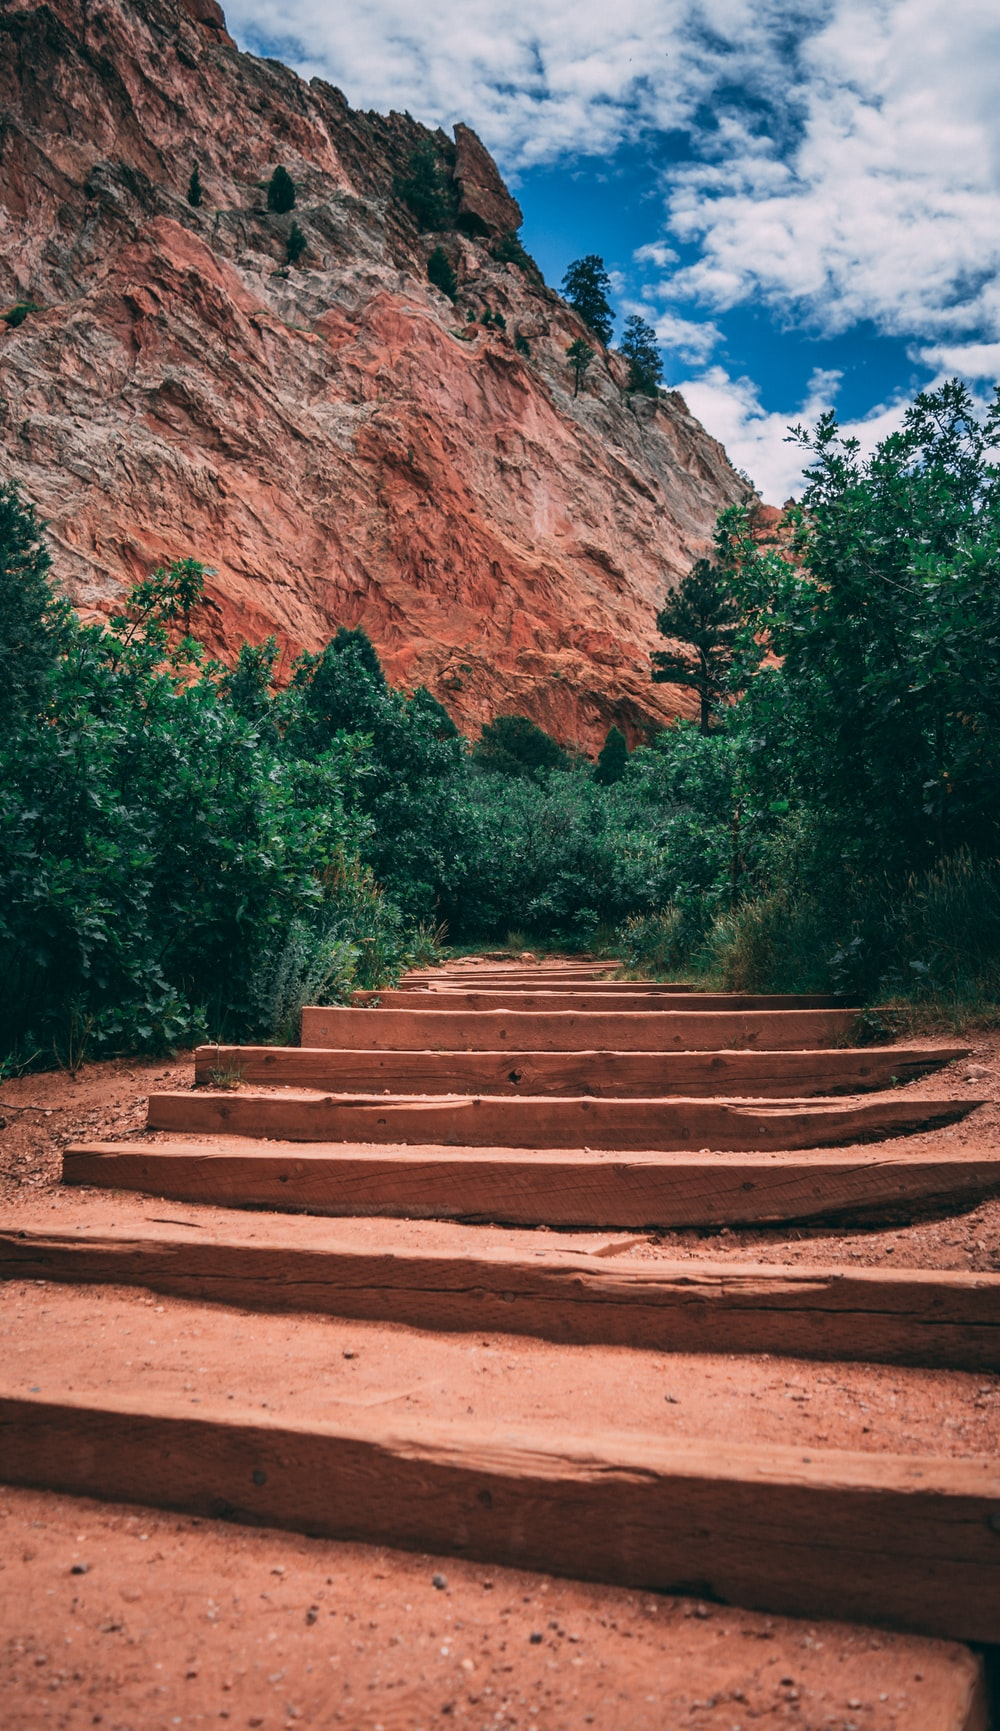 brown wooden stairs near brown rock formation during daytime